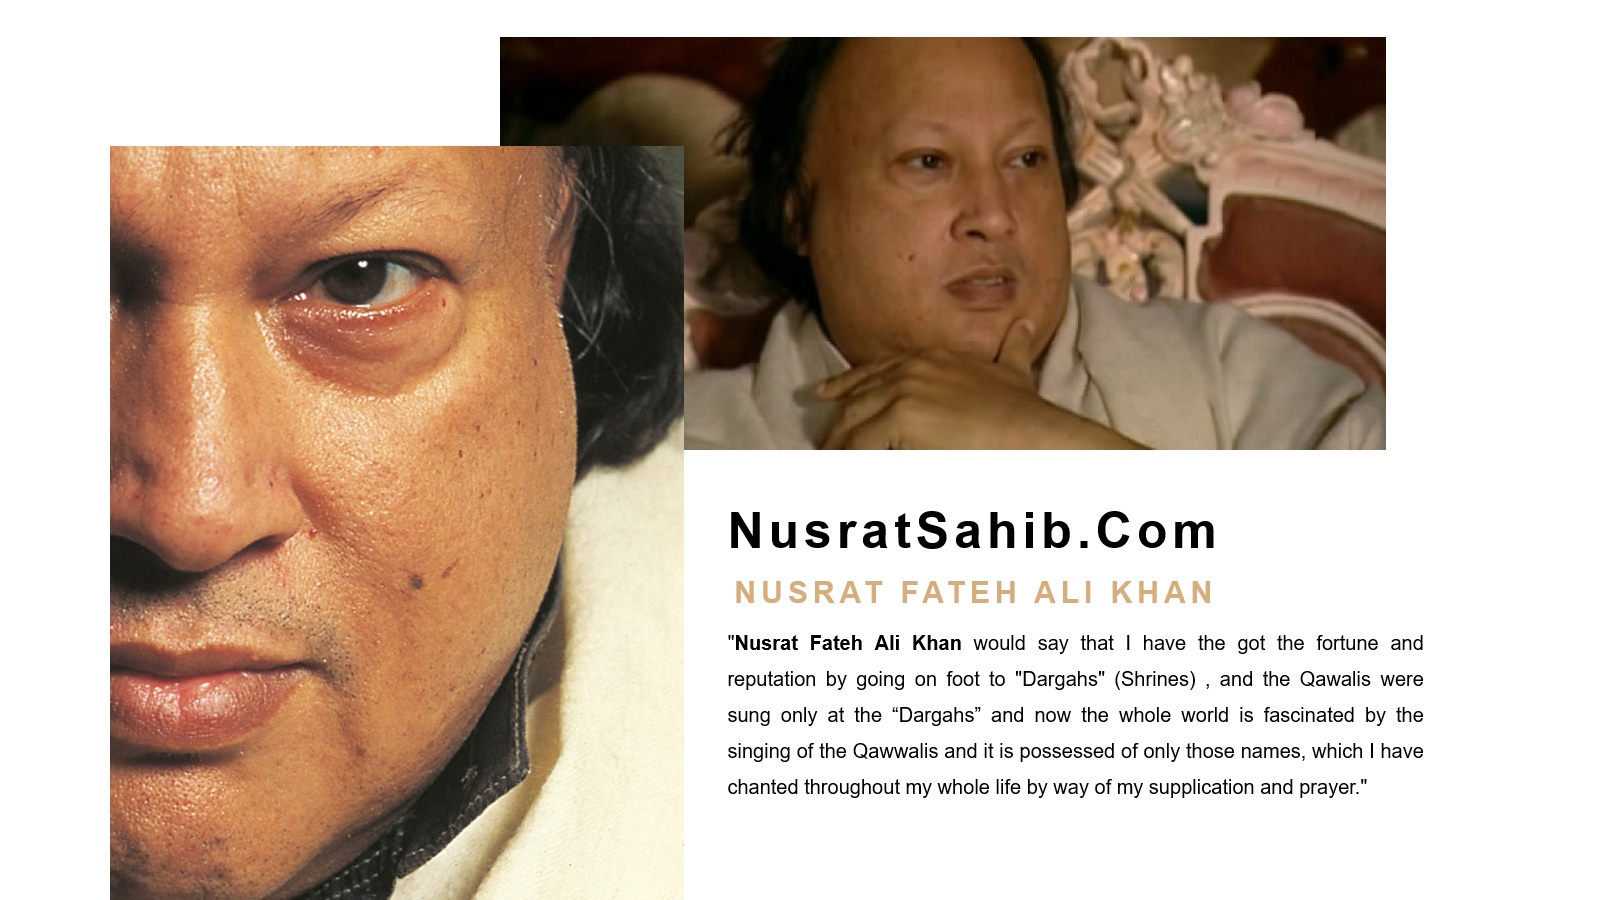 Nusrat Fateh Ali Khan would say that I have the got the fortune and reputation by going on foot to Dargahs | NusratSahib.Com